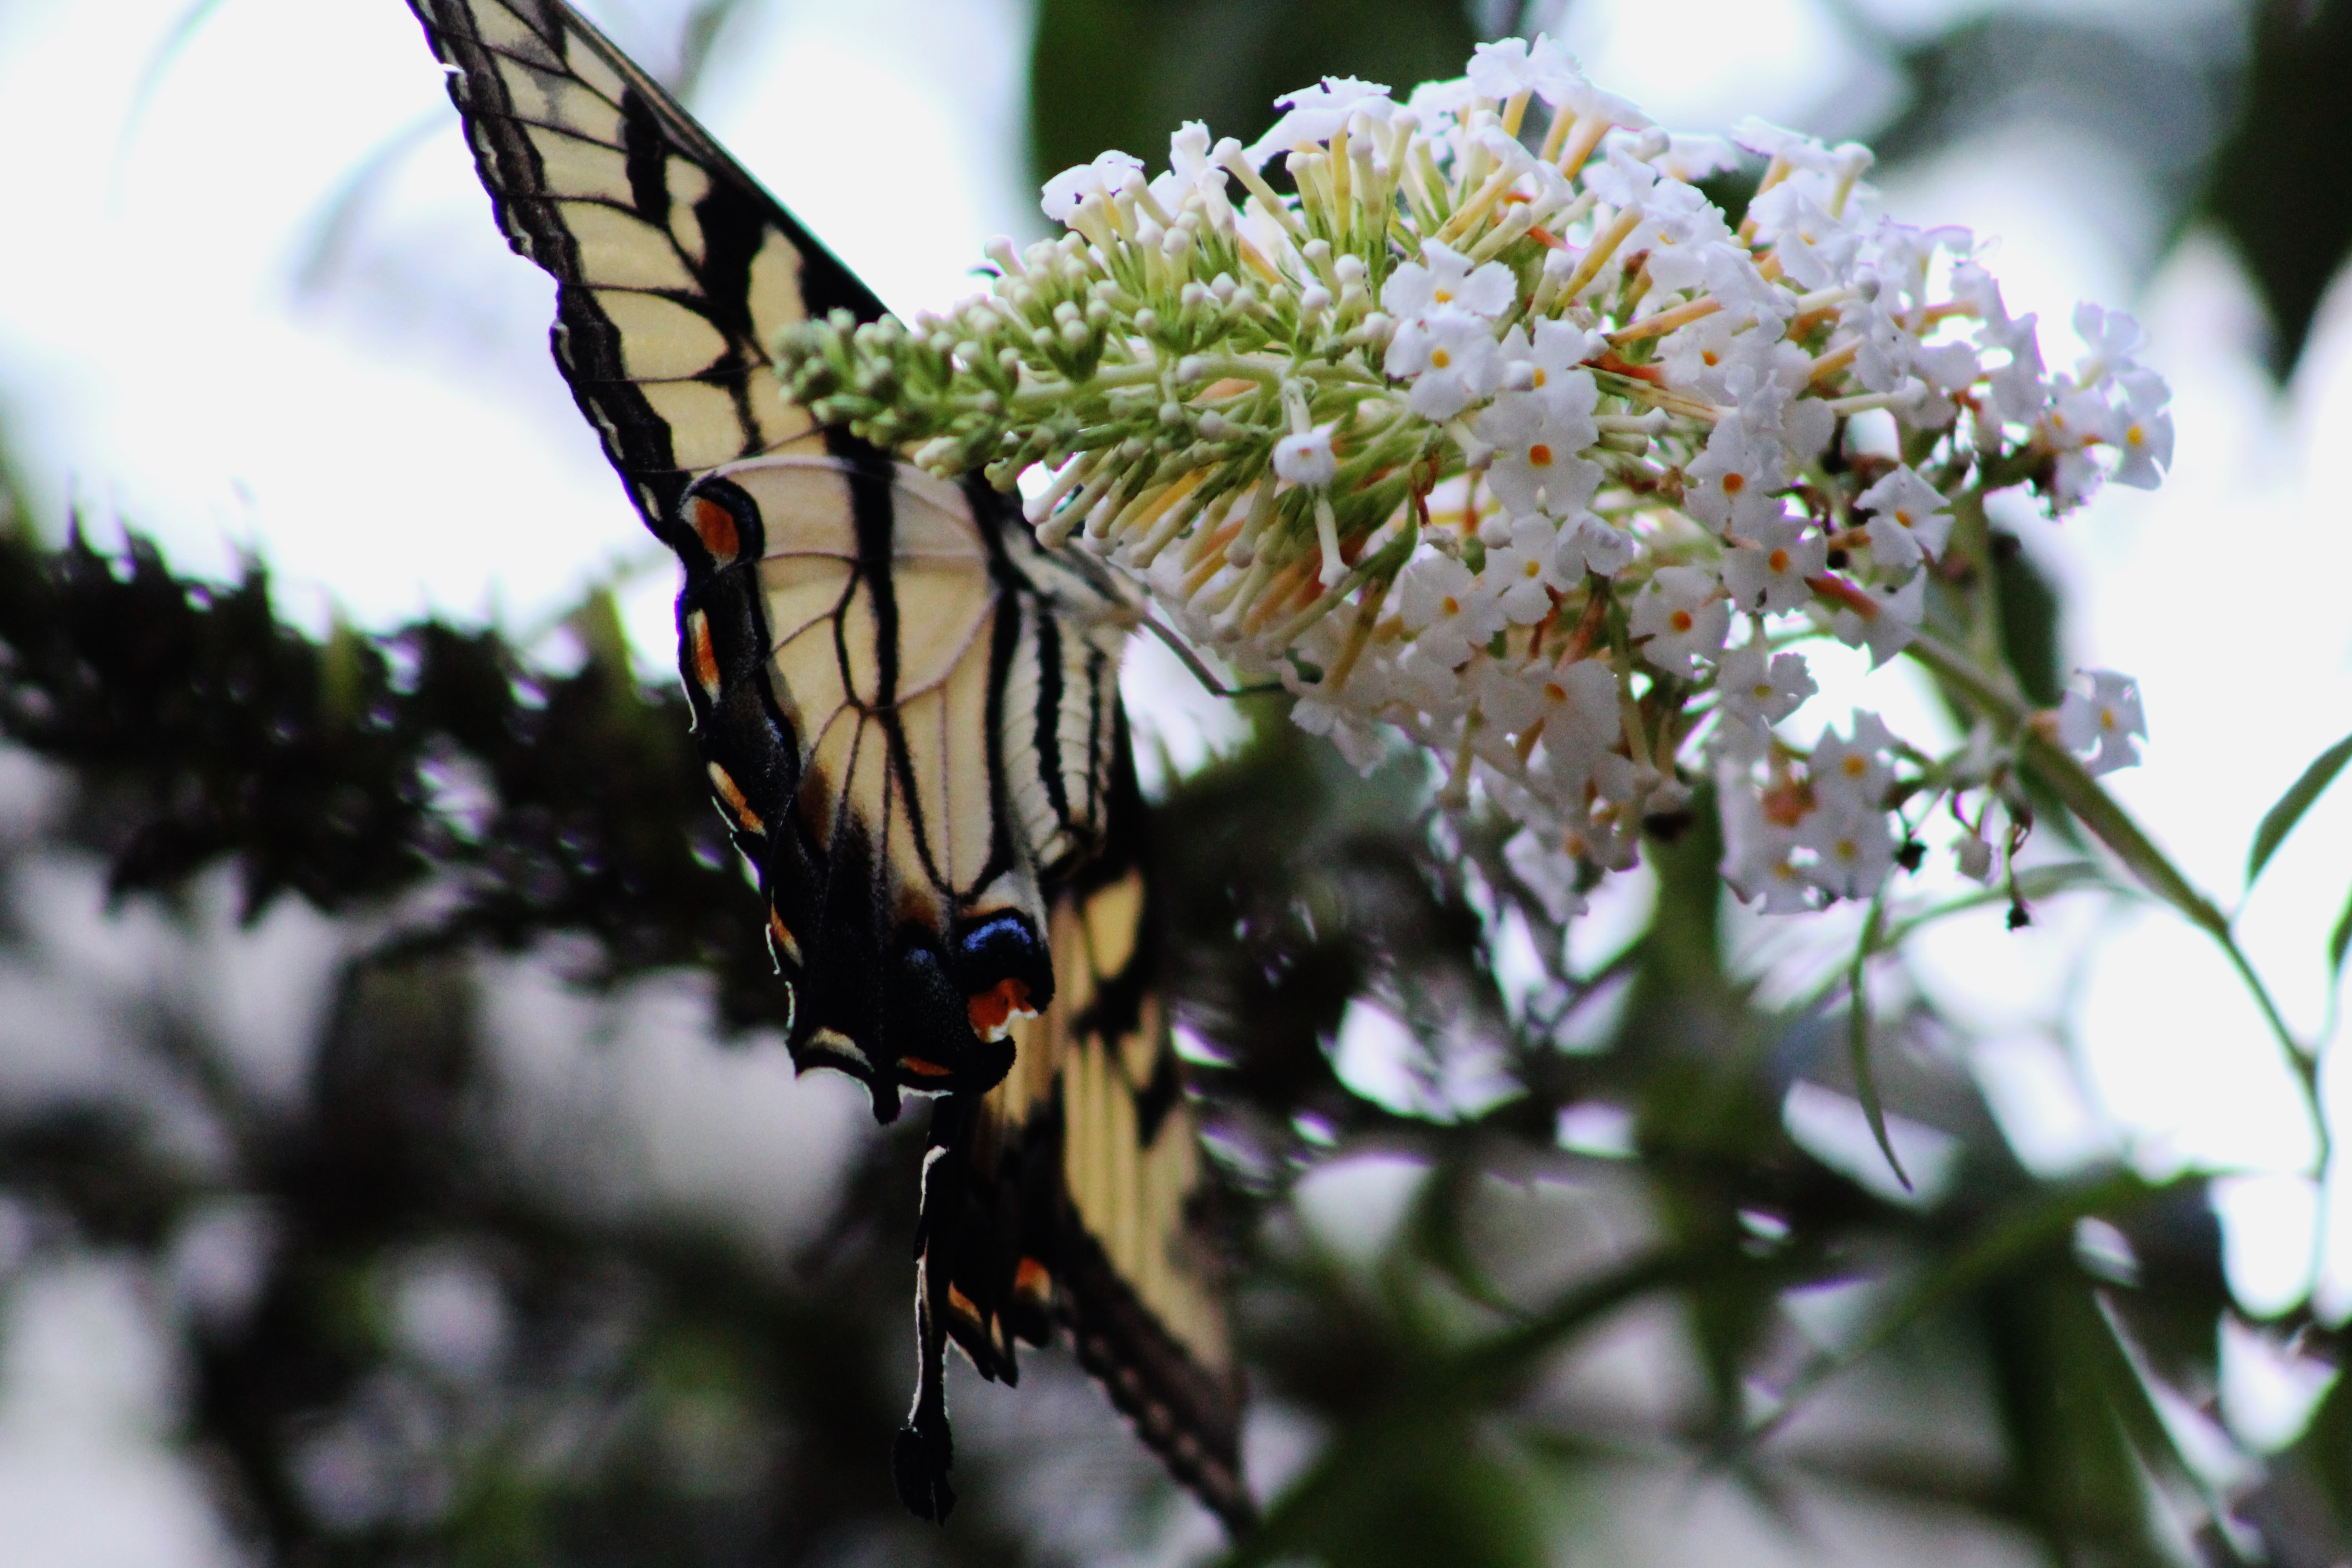 A large orangish white butterfly on white flowers.